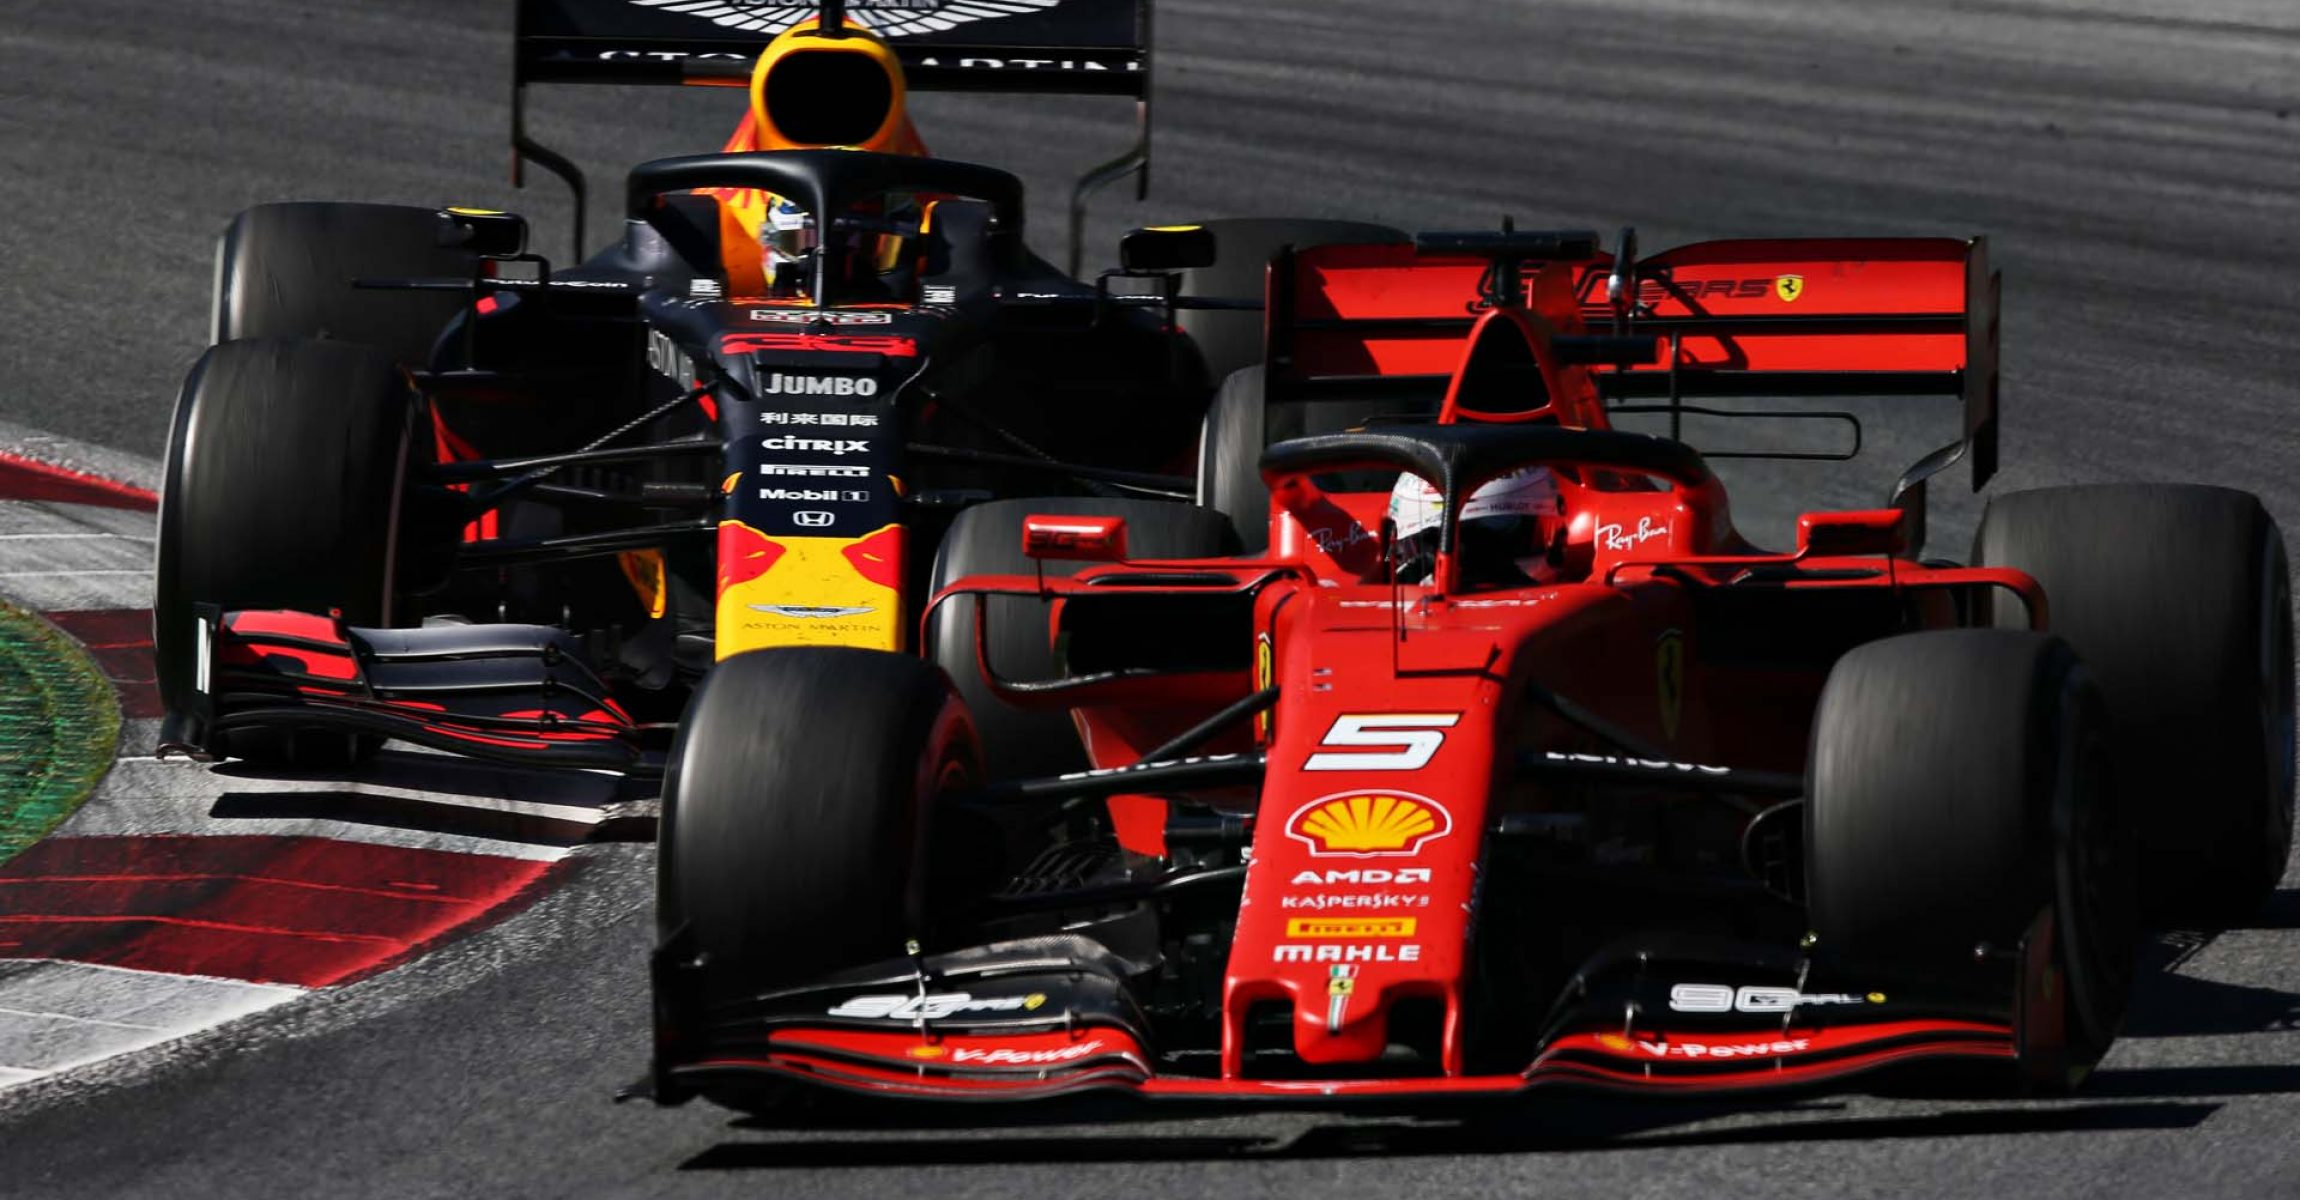 SPIELBERG, AUSTRIA - JUNE 30: Sebastian Vettel of Germany driving the (5) Scuderia Ferrari SF90 leads Max Verstappen of the Netherlands driving the (33) Aston Martin Red Bull Racing RB15 on track during the F1 Grand Prix of Austria at Red Bull Ring on June 30, 2019 in Spielberg, Austria. (Photo by Charles Coates/Getty Images) // Getty Images / Red Bull Content Pool  // AP-1ZT9G2UNH2111 // Usage for editorial use only // Please go to www.redbullcontentpool.com for further information. //